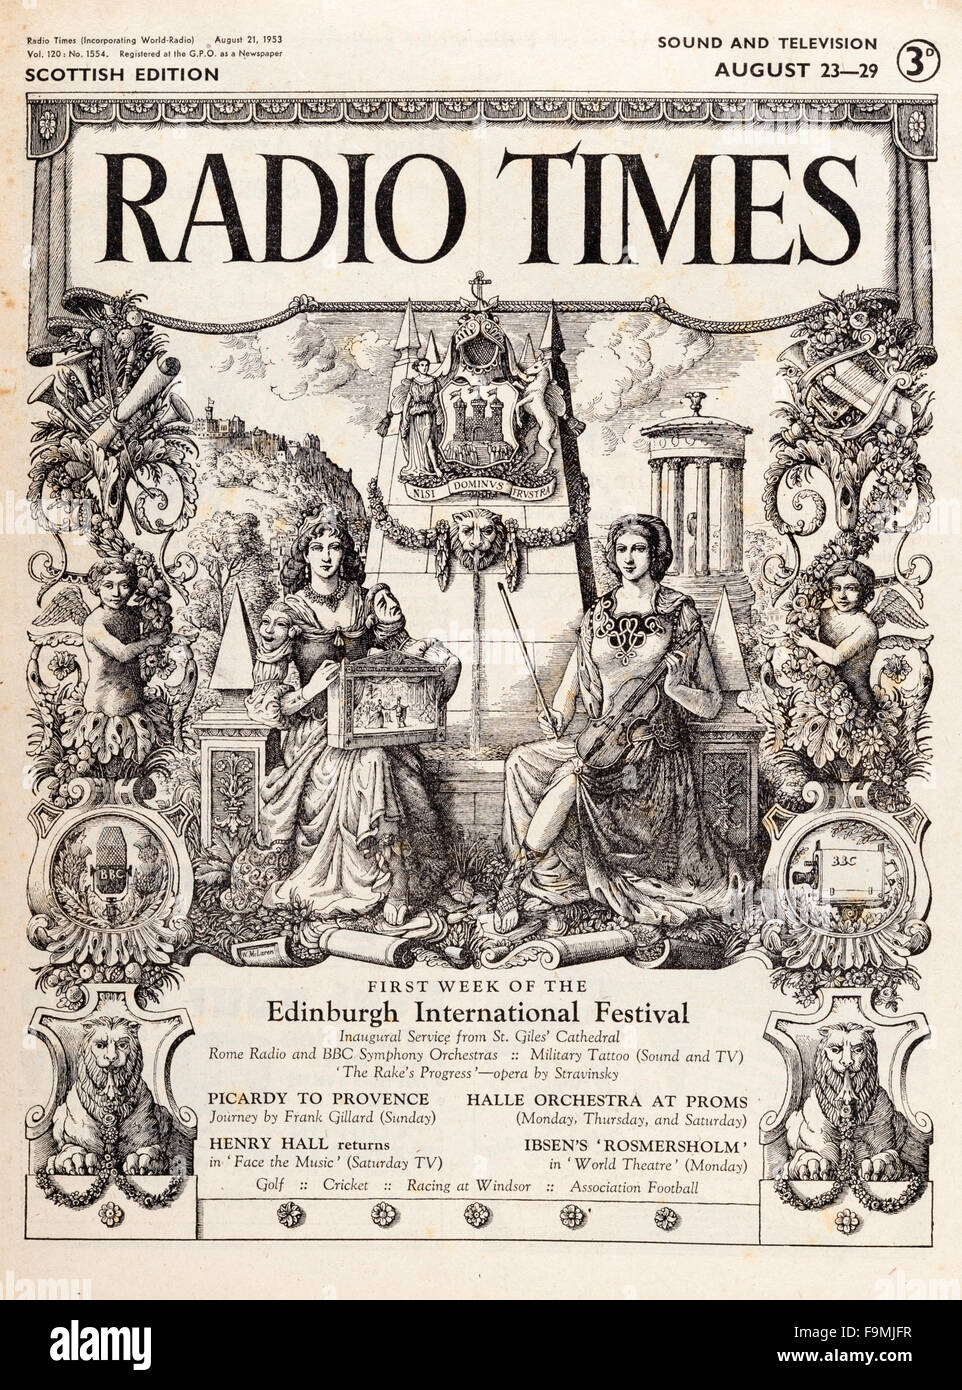 Cover of an old issue of Radio Times magazine marking the 1953 Edinburgh International Festival - Stock Image